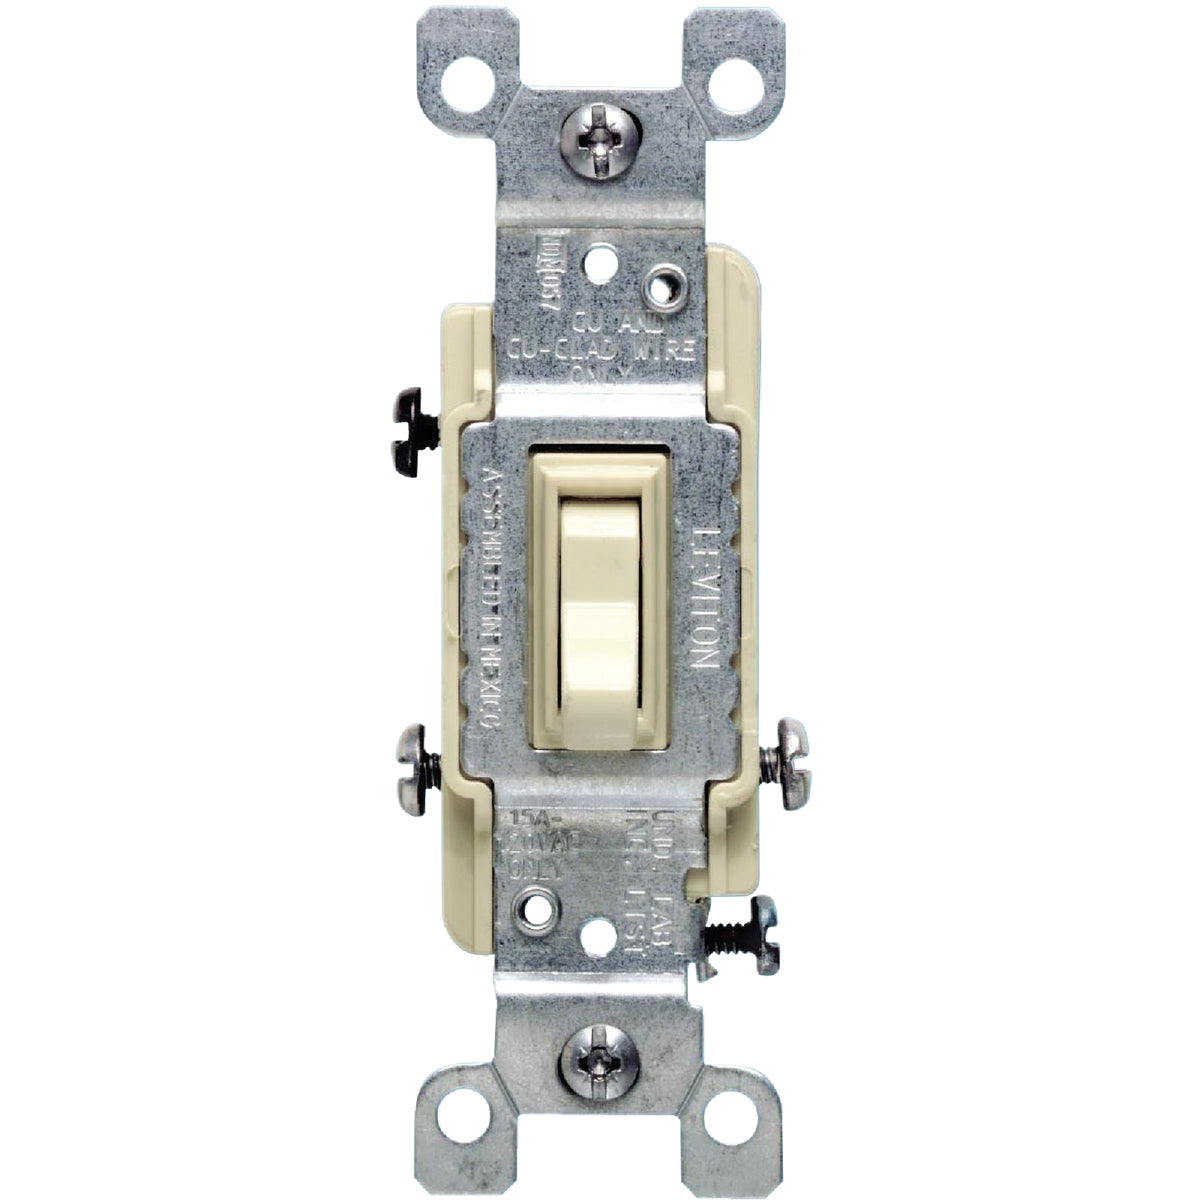 3-WAY GRND SWITCH - 8771453-2I by Leviton Mfg Co